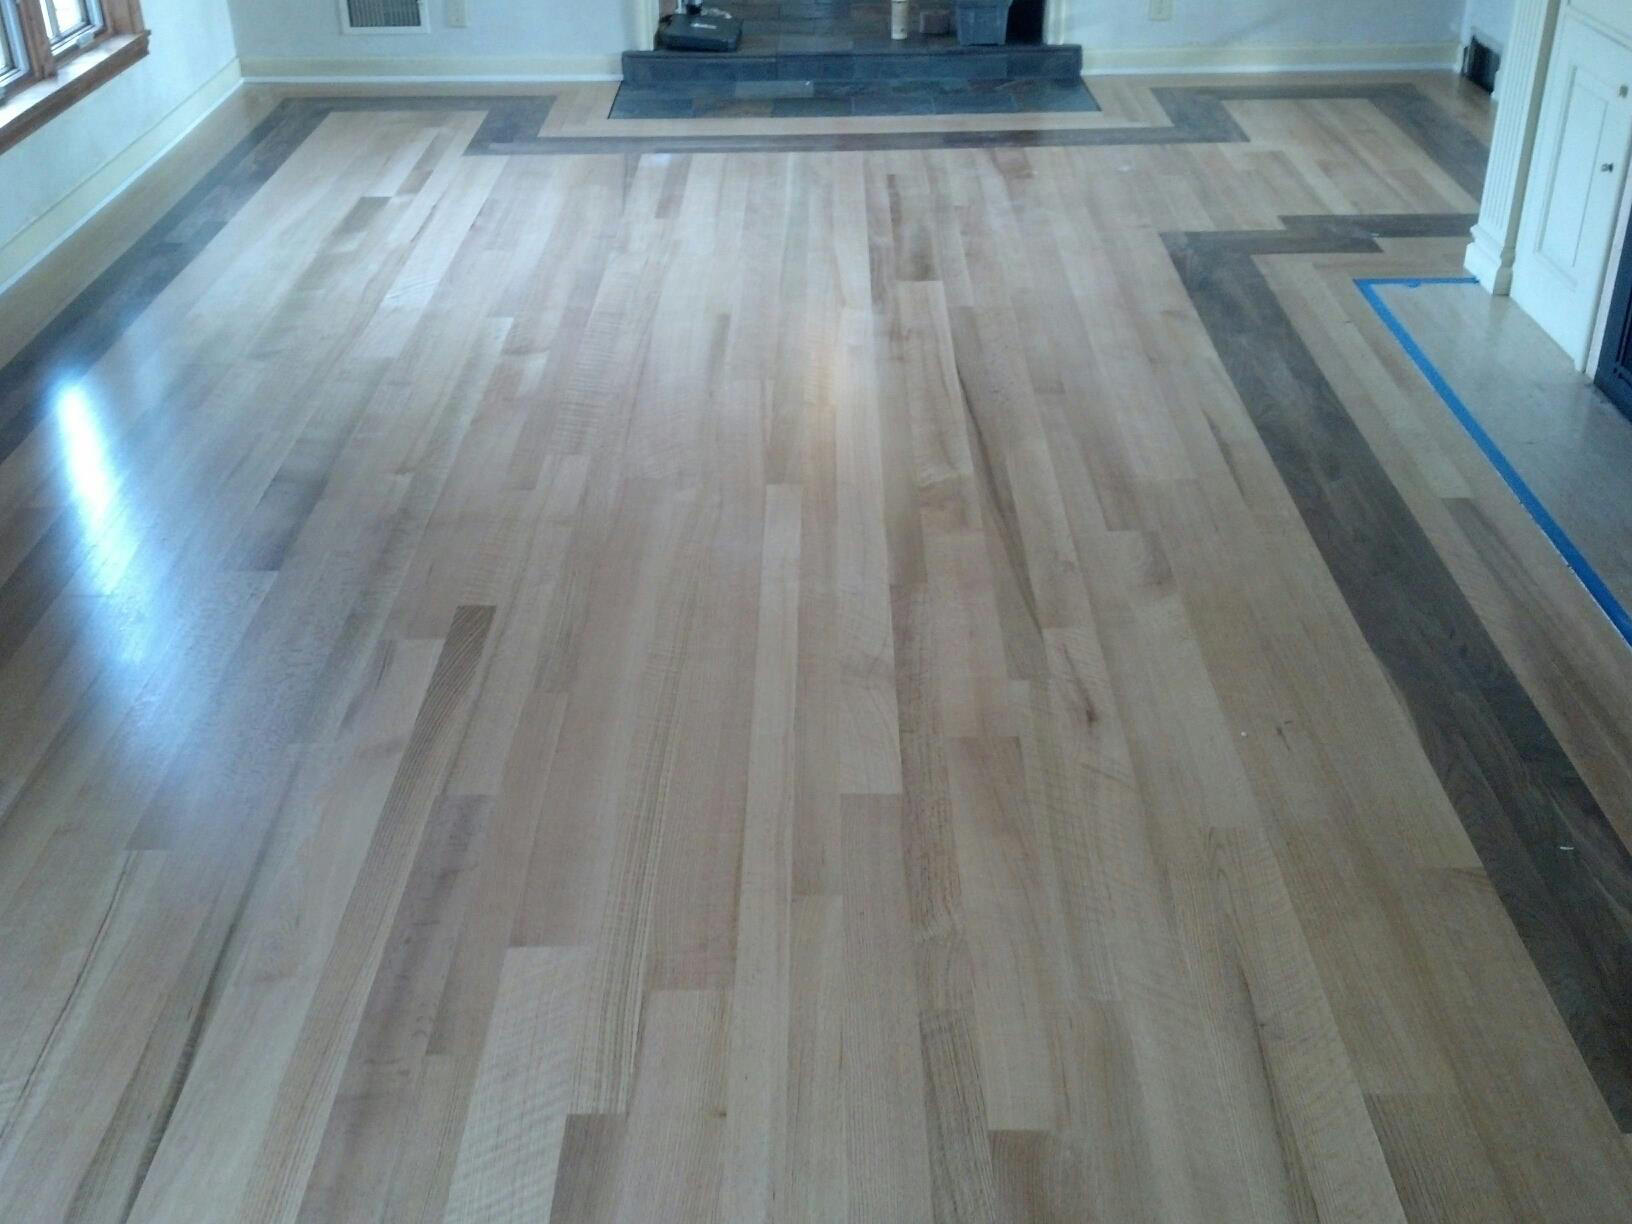 Precision Hardwood Floors image 0